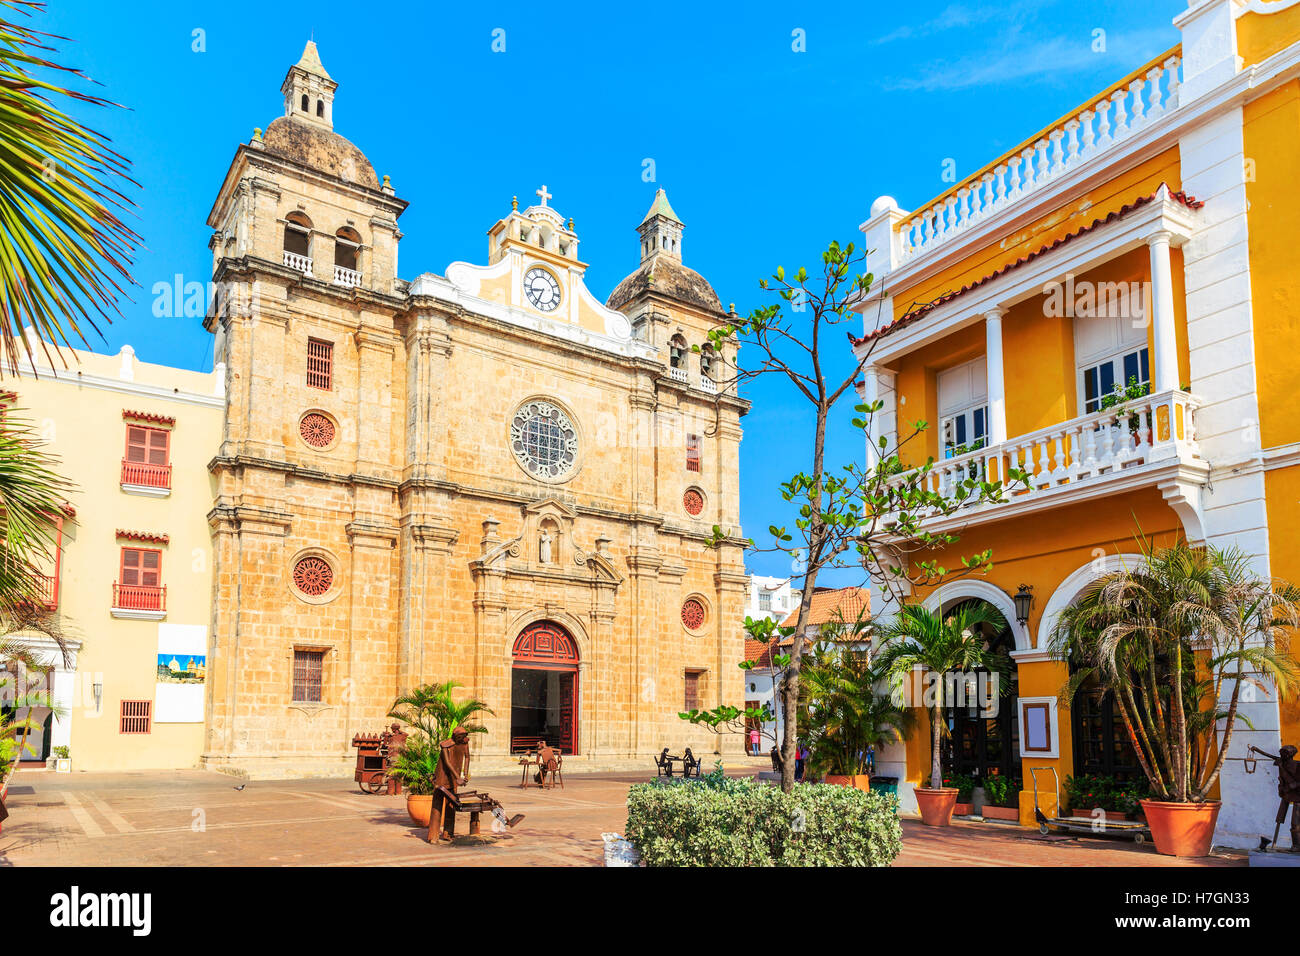 Church of St Peter Claver in Cartagena, Colombia - Stock Image